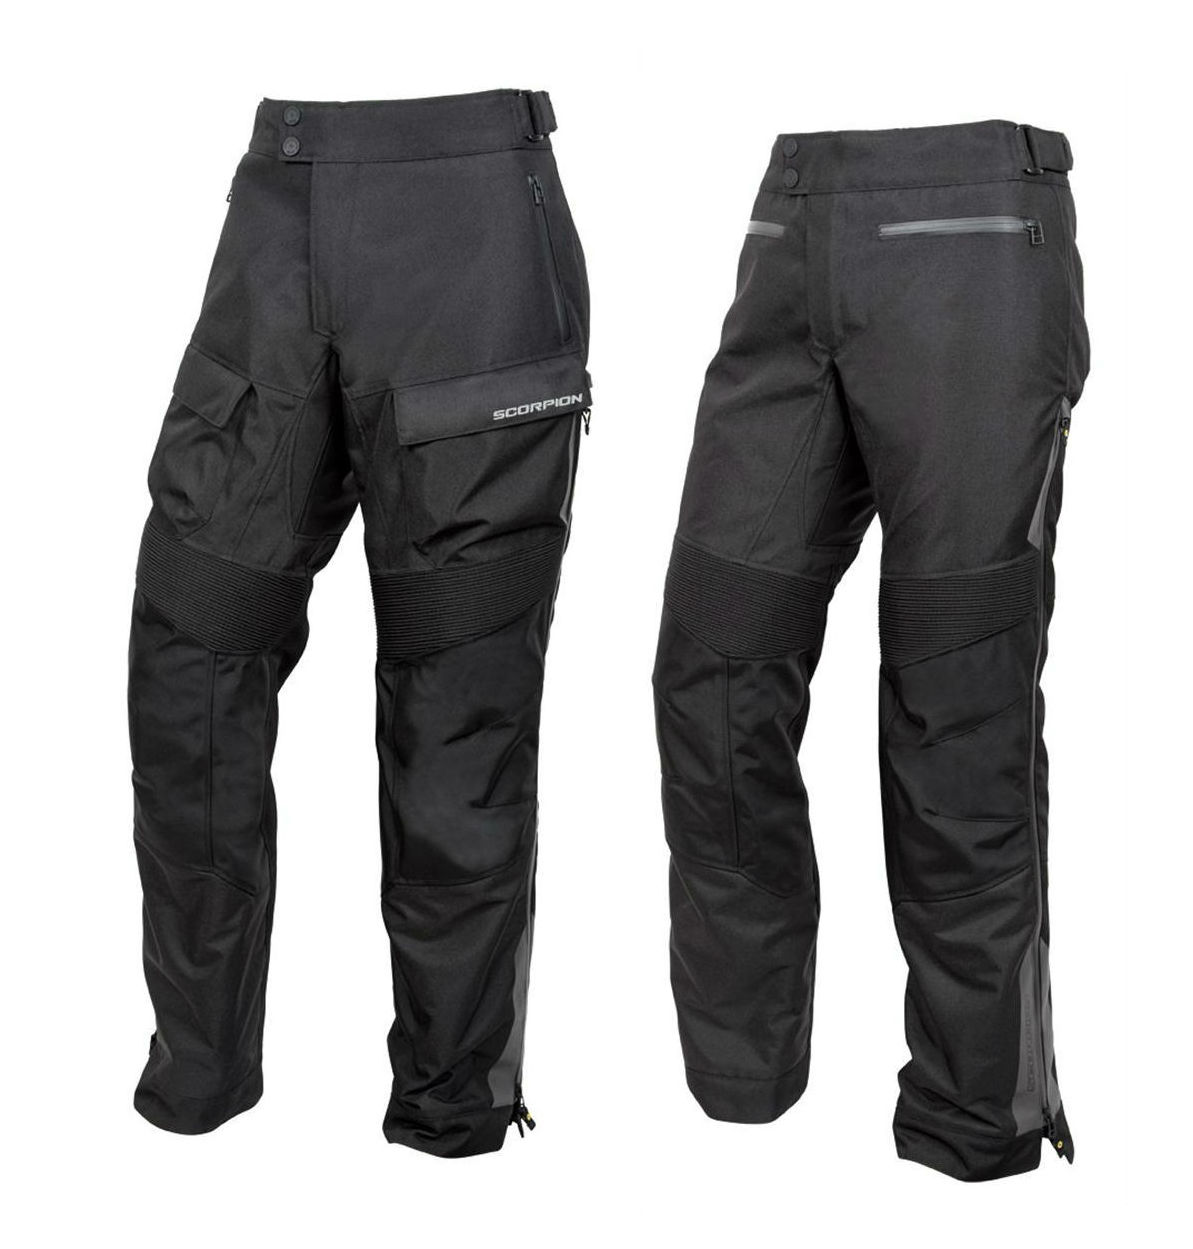 best pair of motorcycle riding pants